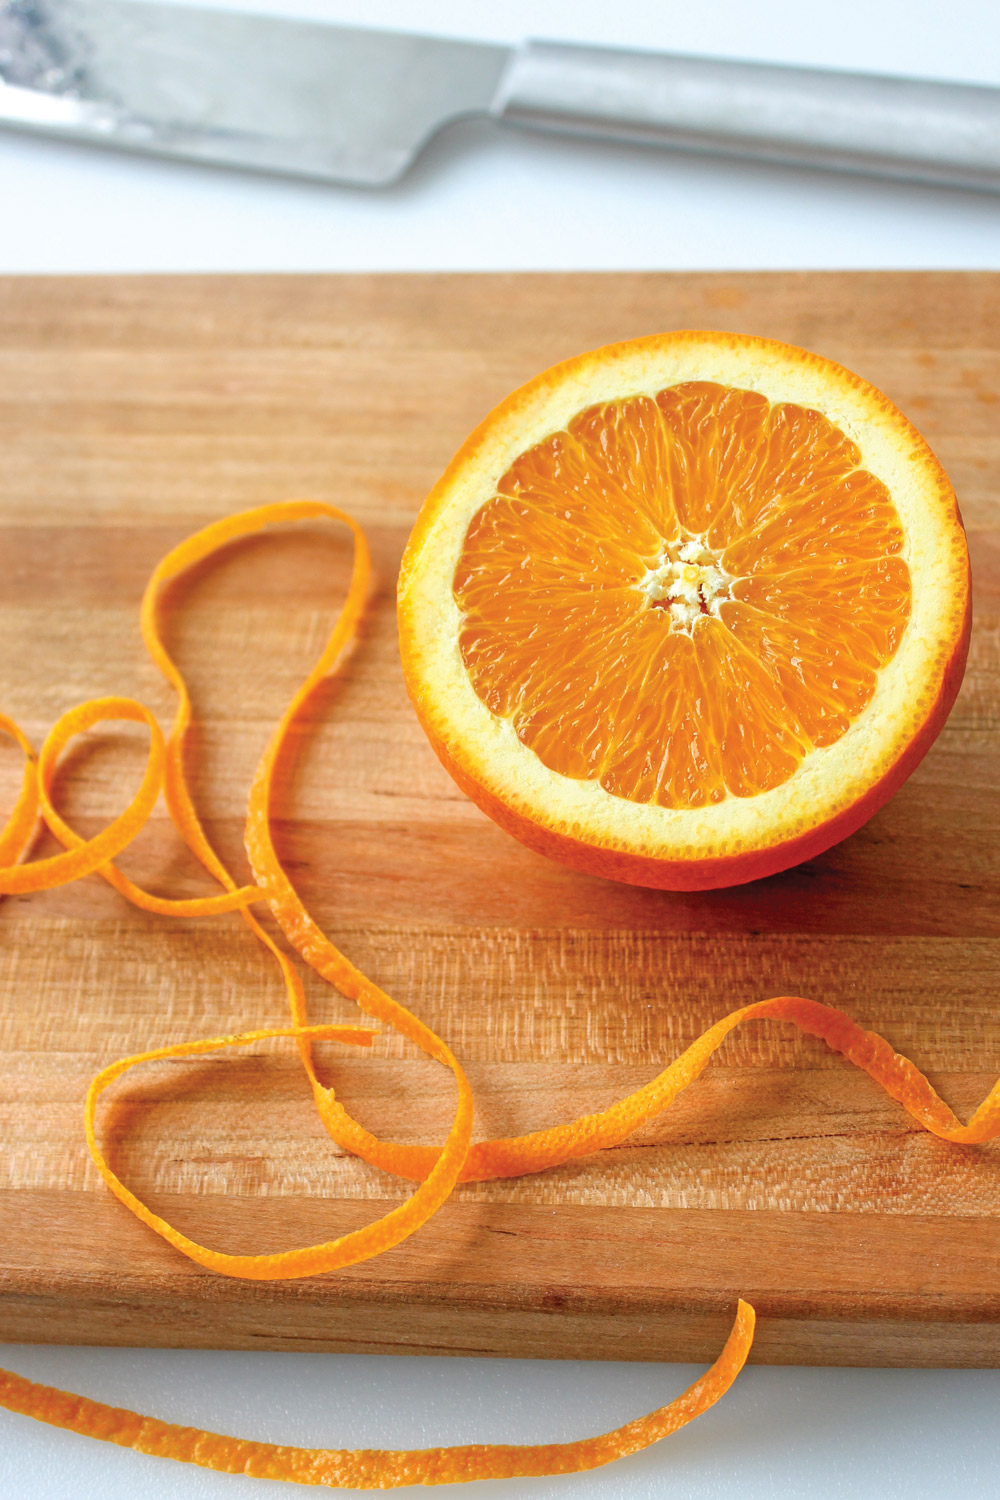 Friends Drift Inn Orange Marmale uses fresh oranges and orange peel ribbons